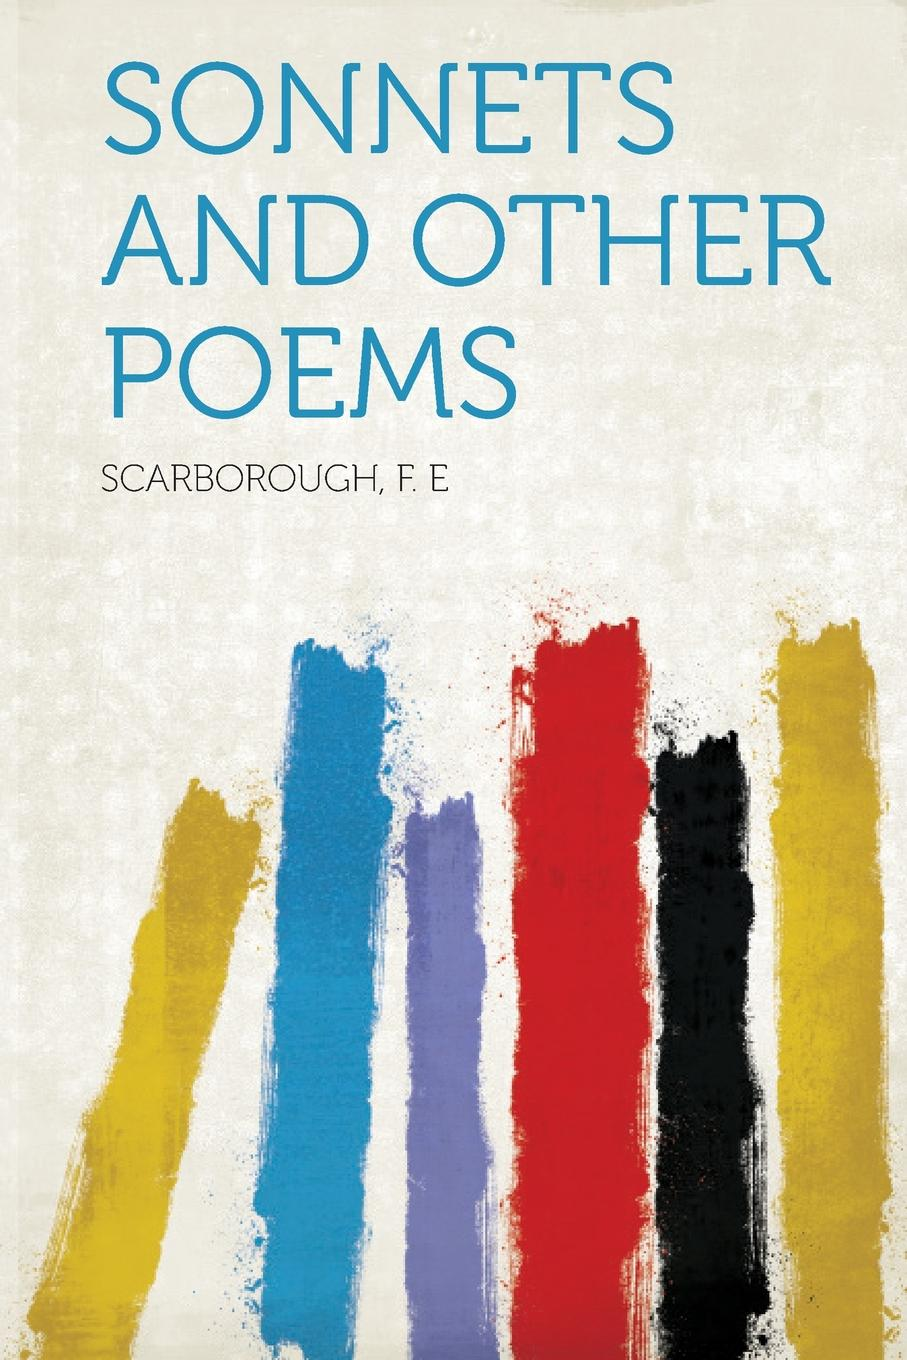 Scarborough F. E Sonnets and Other Poems